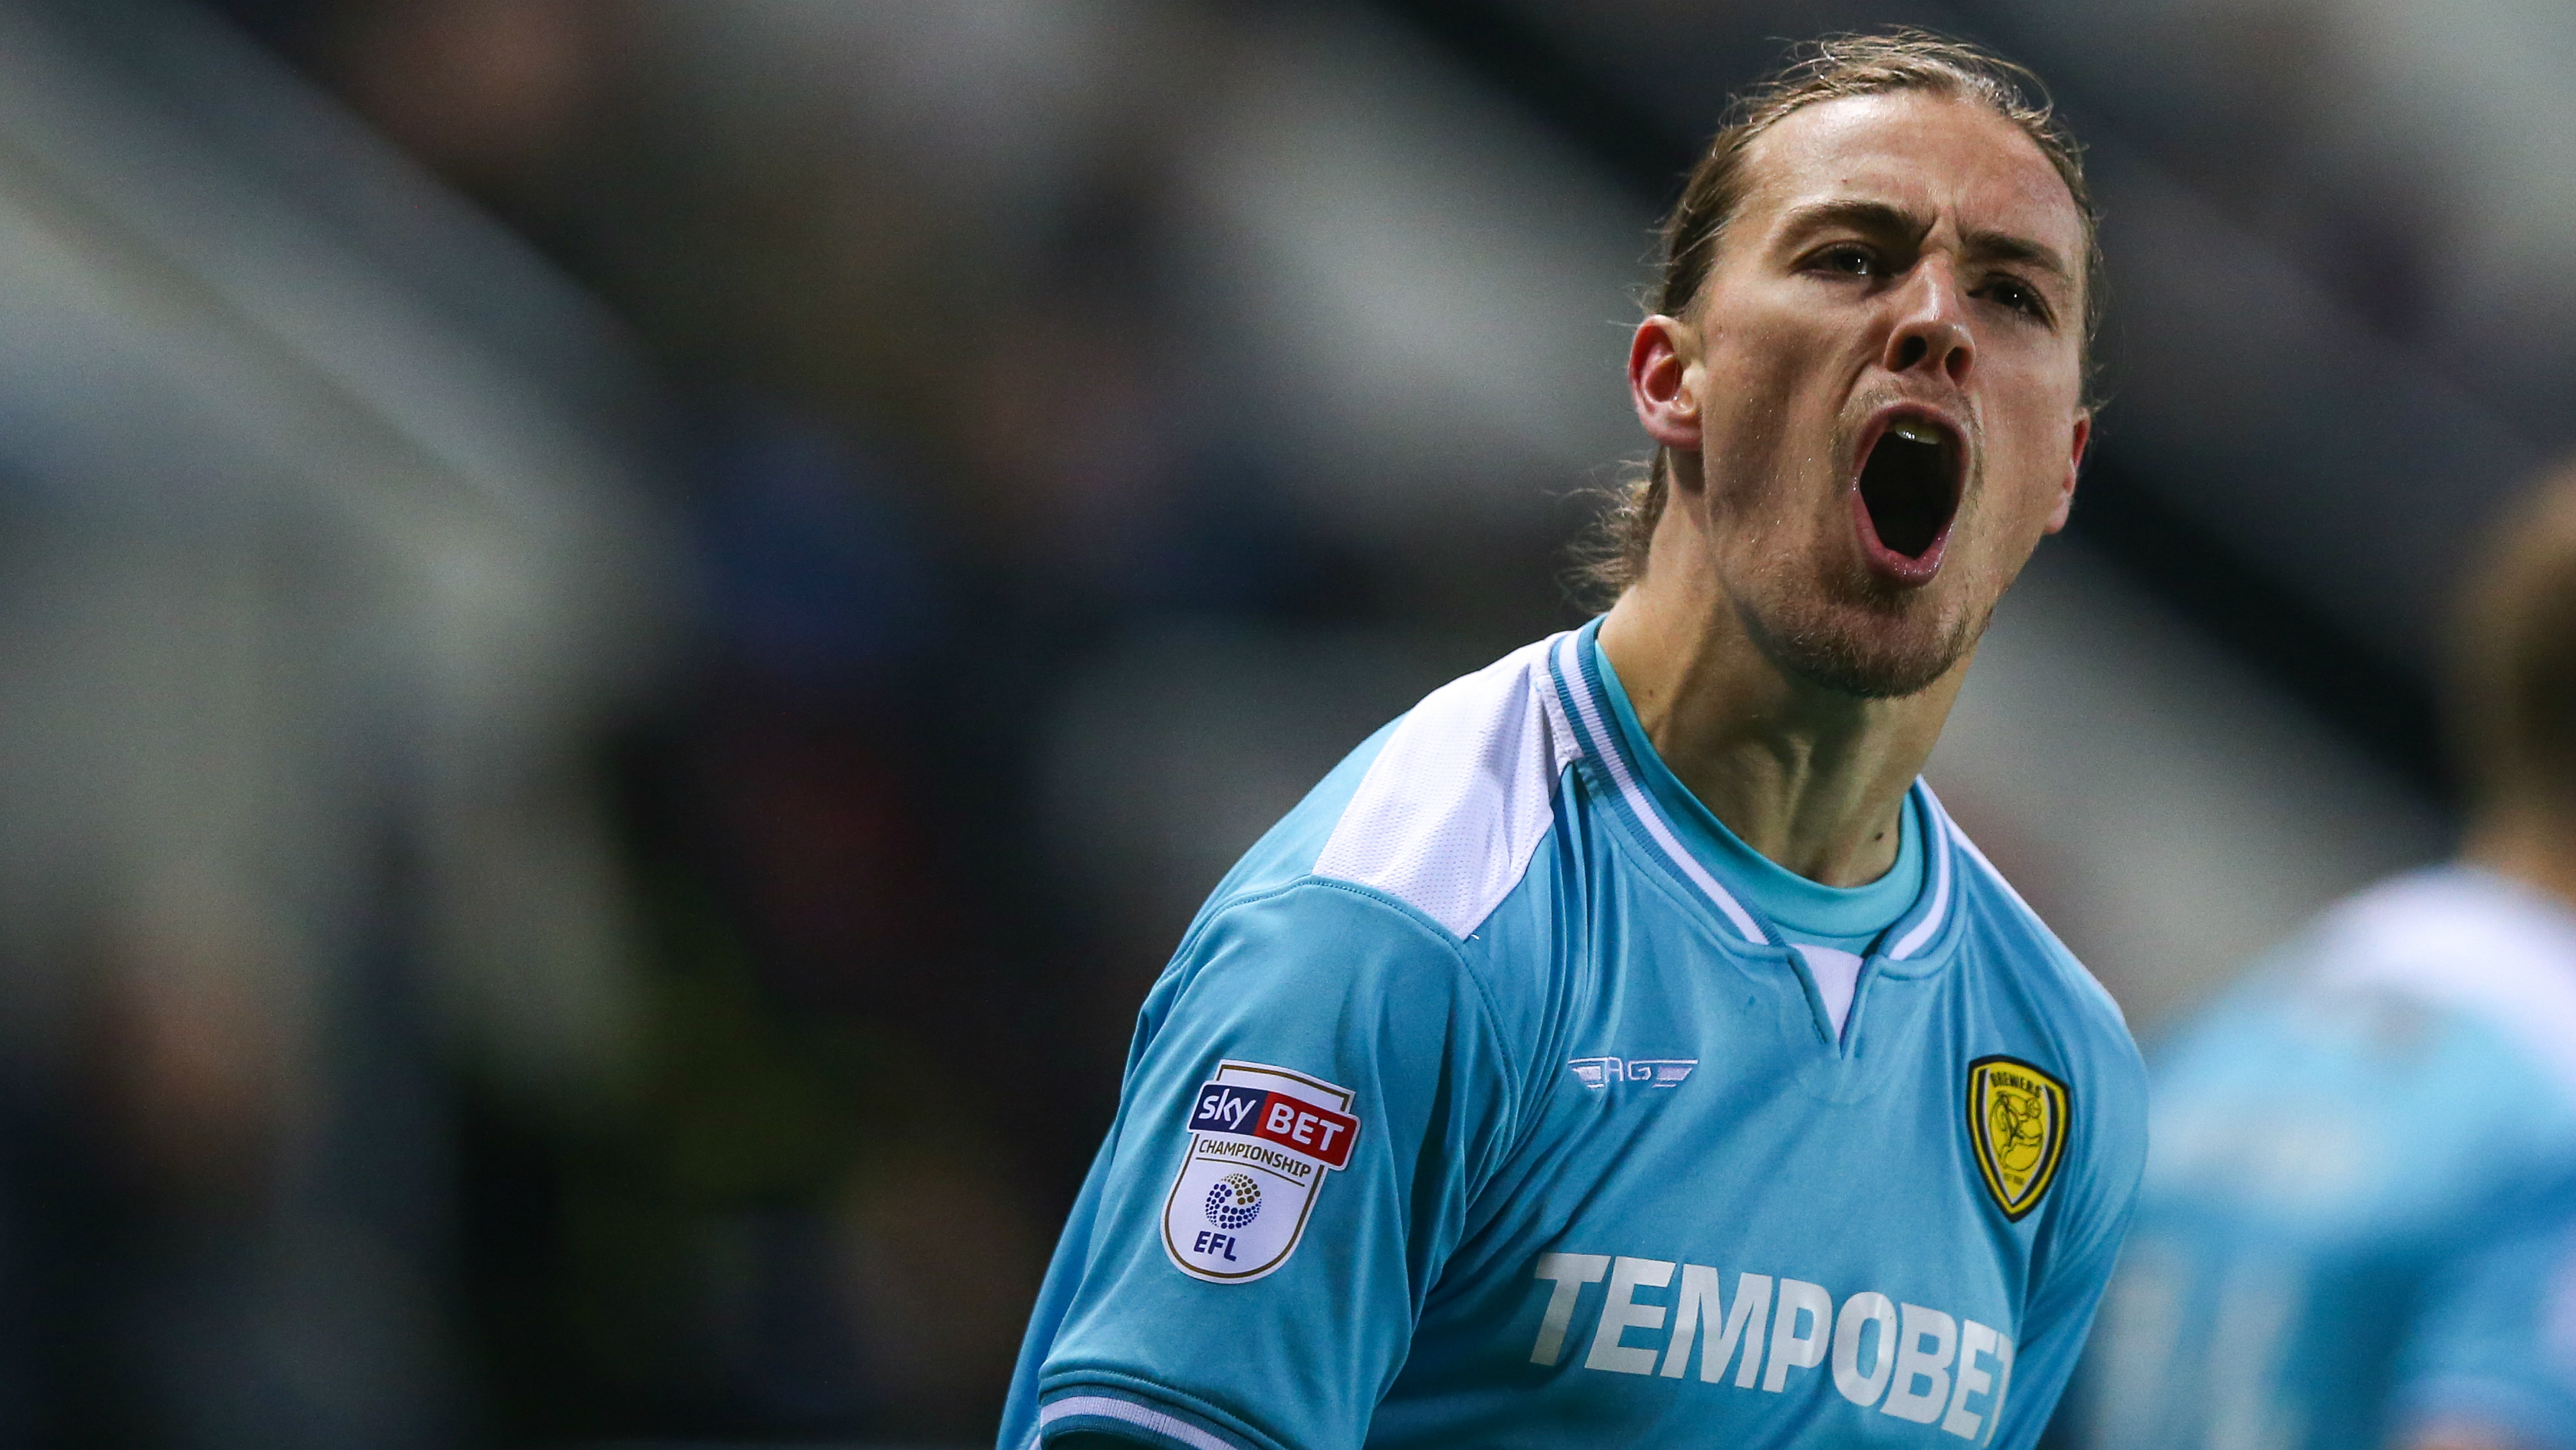 Jackson Irvine's Burton Albion have been drawn to play Manchester United in the next round of England's Carabao Cup (League Cup).